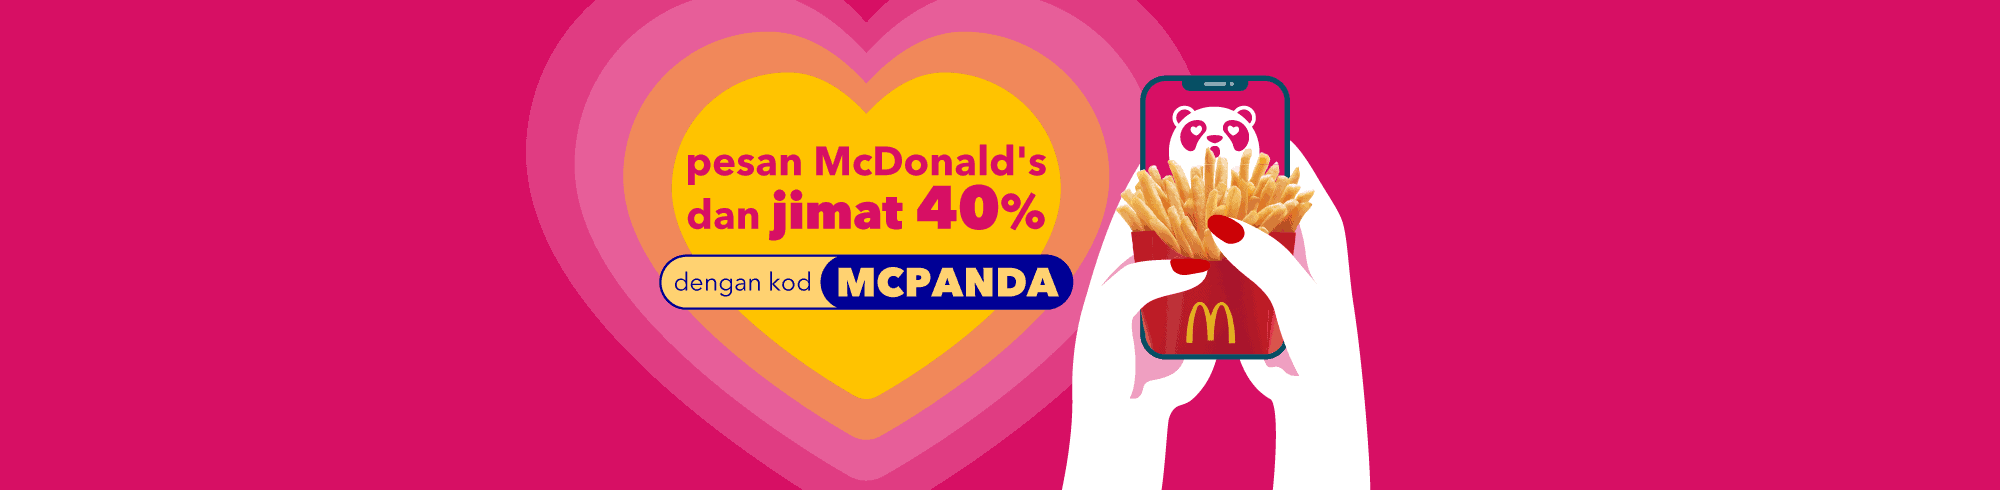 Read more about the article foodpanda Has Got Your McDonald's Cravings Covered – New Voucher Offers 40% Discount on McDonald's Orders